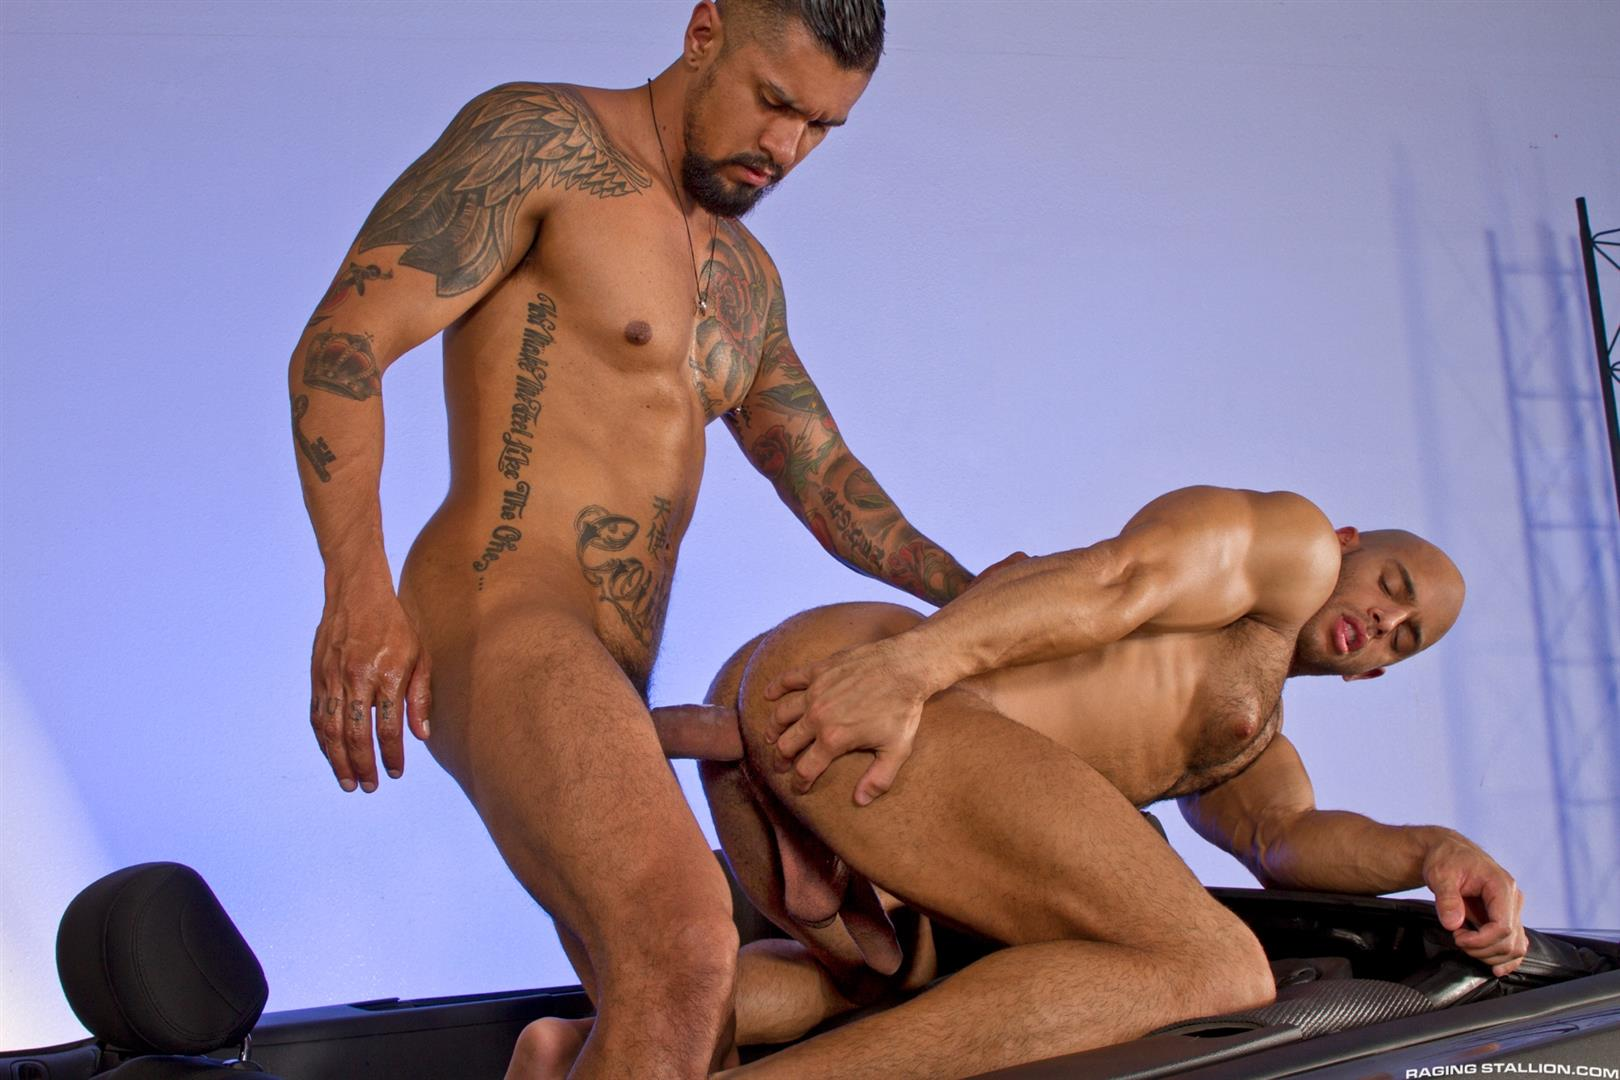 Raging Stallion Sean Zevran and Boomer Banks Bottoms For The First Time Big Uncut Cock Amateur Gay Porn 15